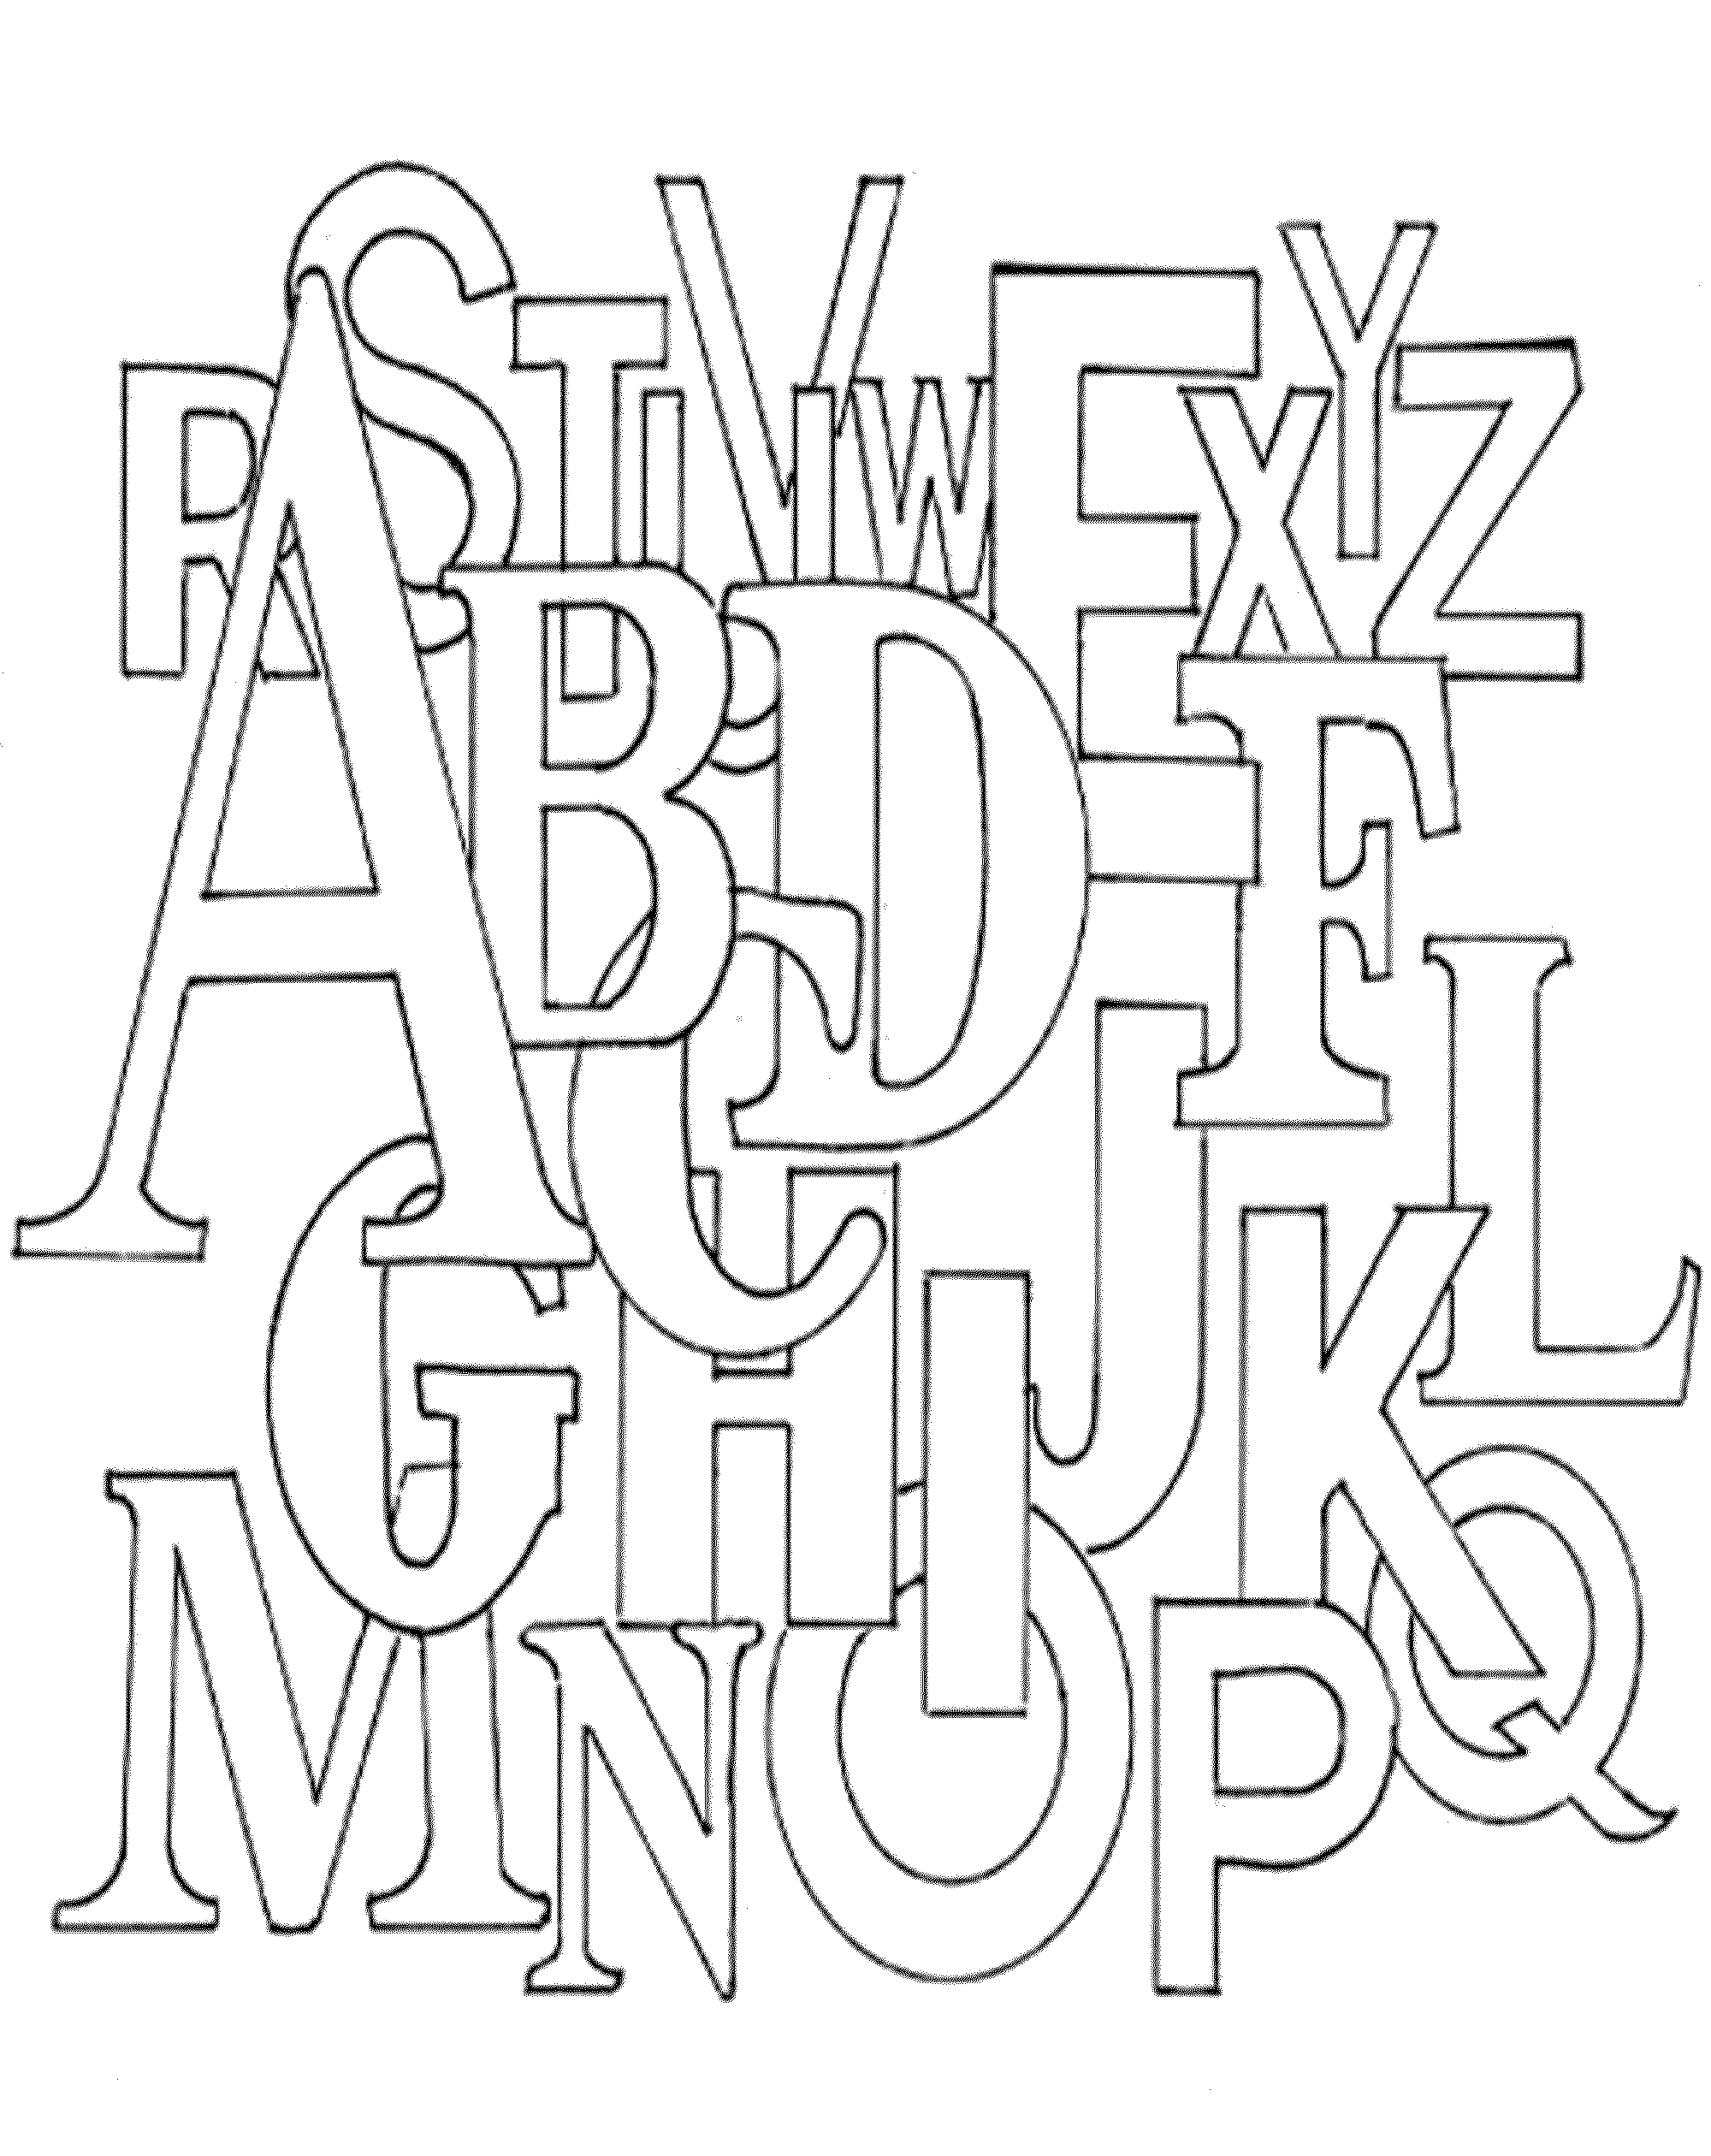 coloring sheet alphabet coloring pages be creative with abc coloring pages sheet pages alphabet coloring coloring